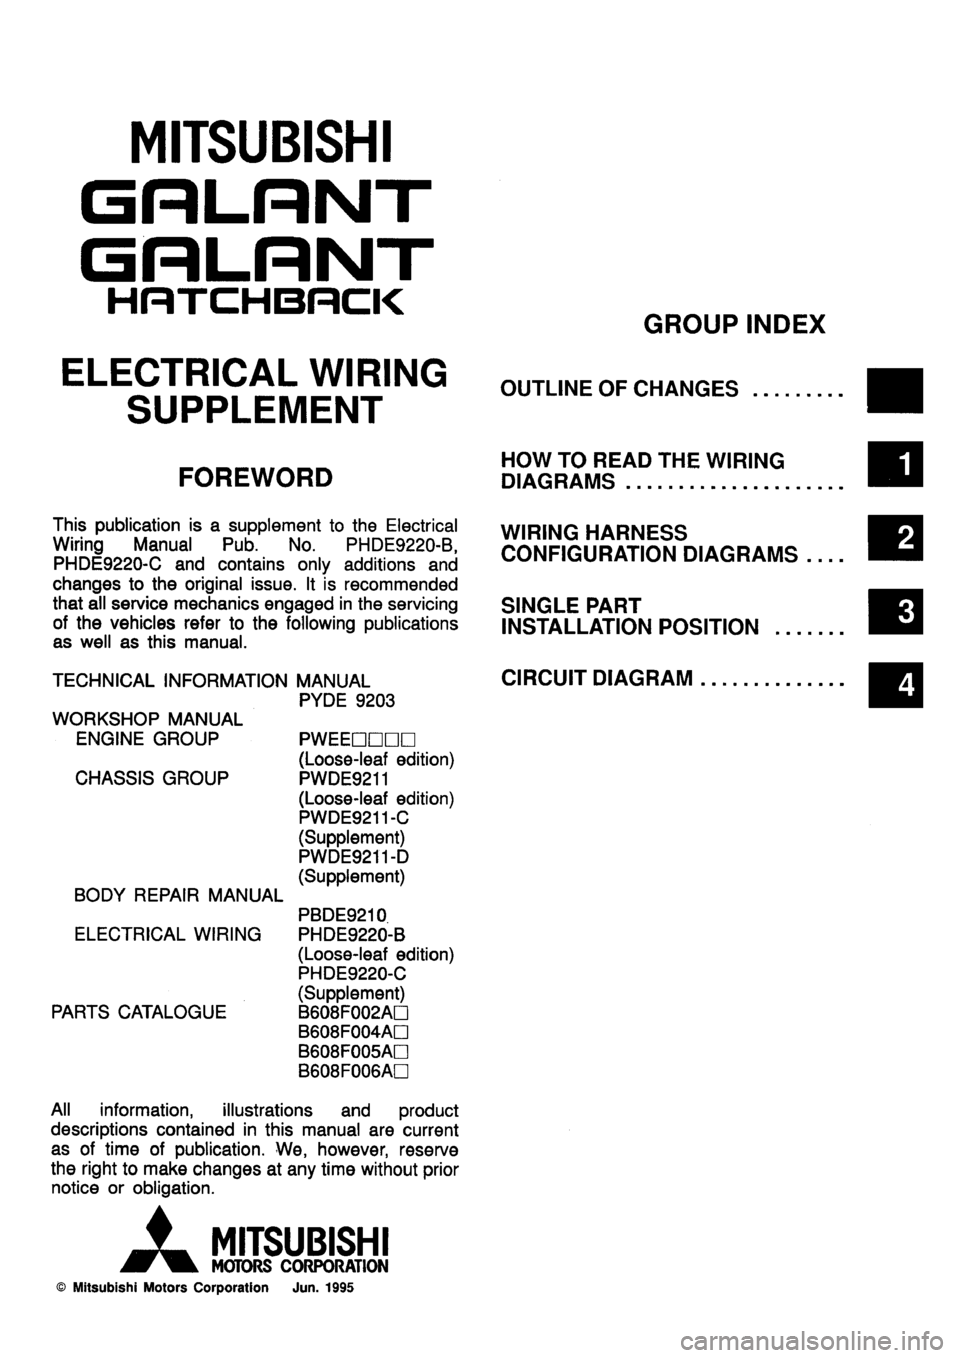 w960_7433 1 mitsubishi galant 1996 7 g electrical wiring diagram workshop manual workshop wiring diagram at panicattacktreatment.co